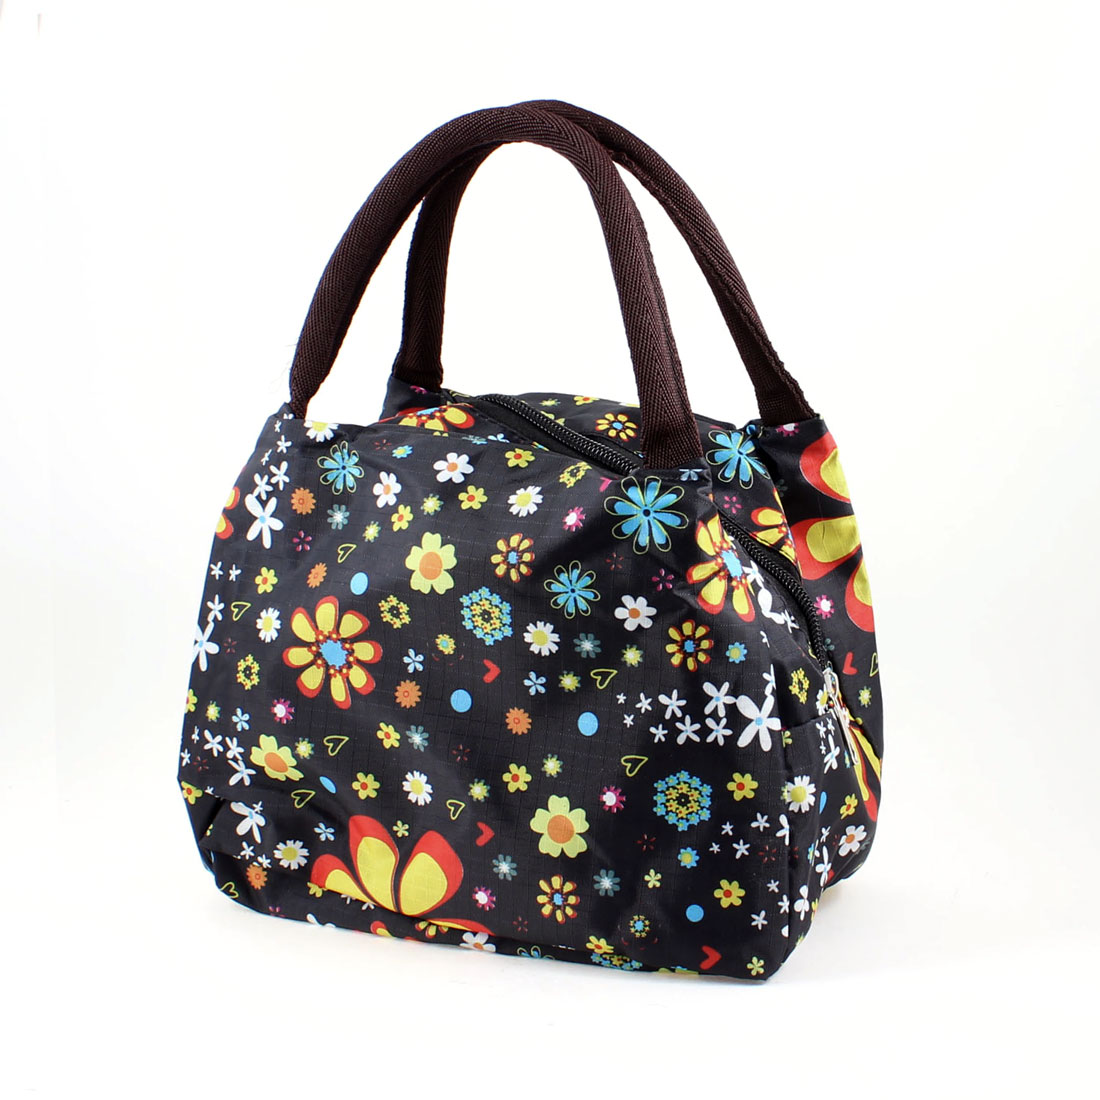 Colorful Floral Pattern Zip Shopping Handbag Bag Black for Ladies